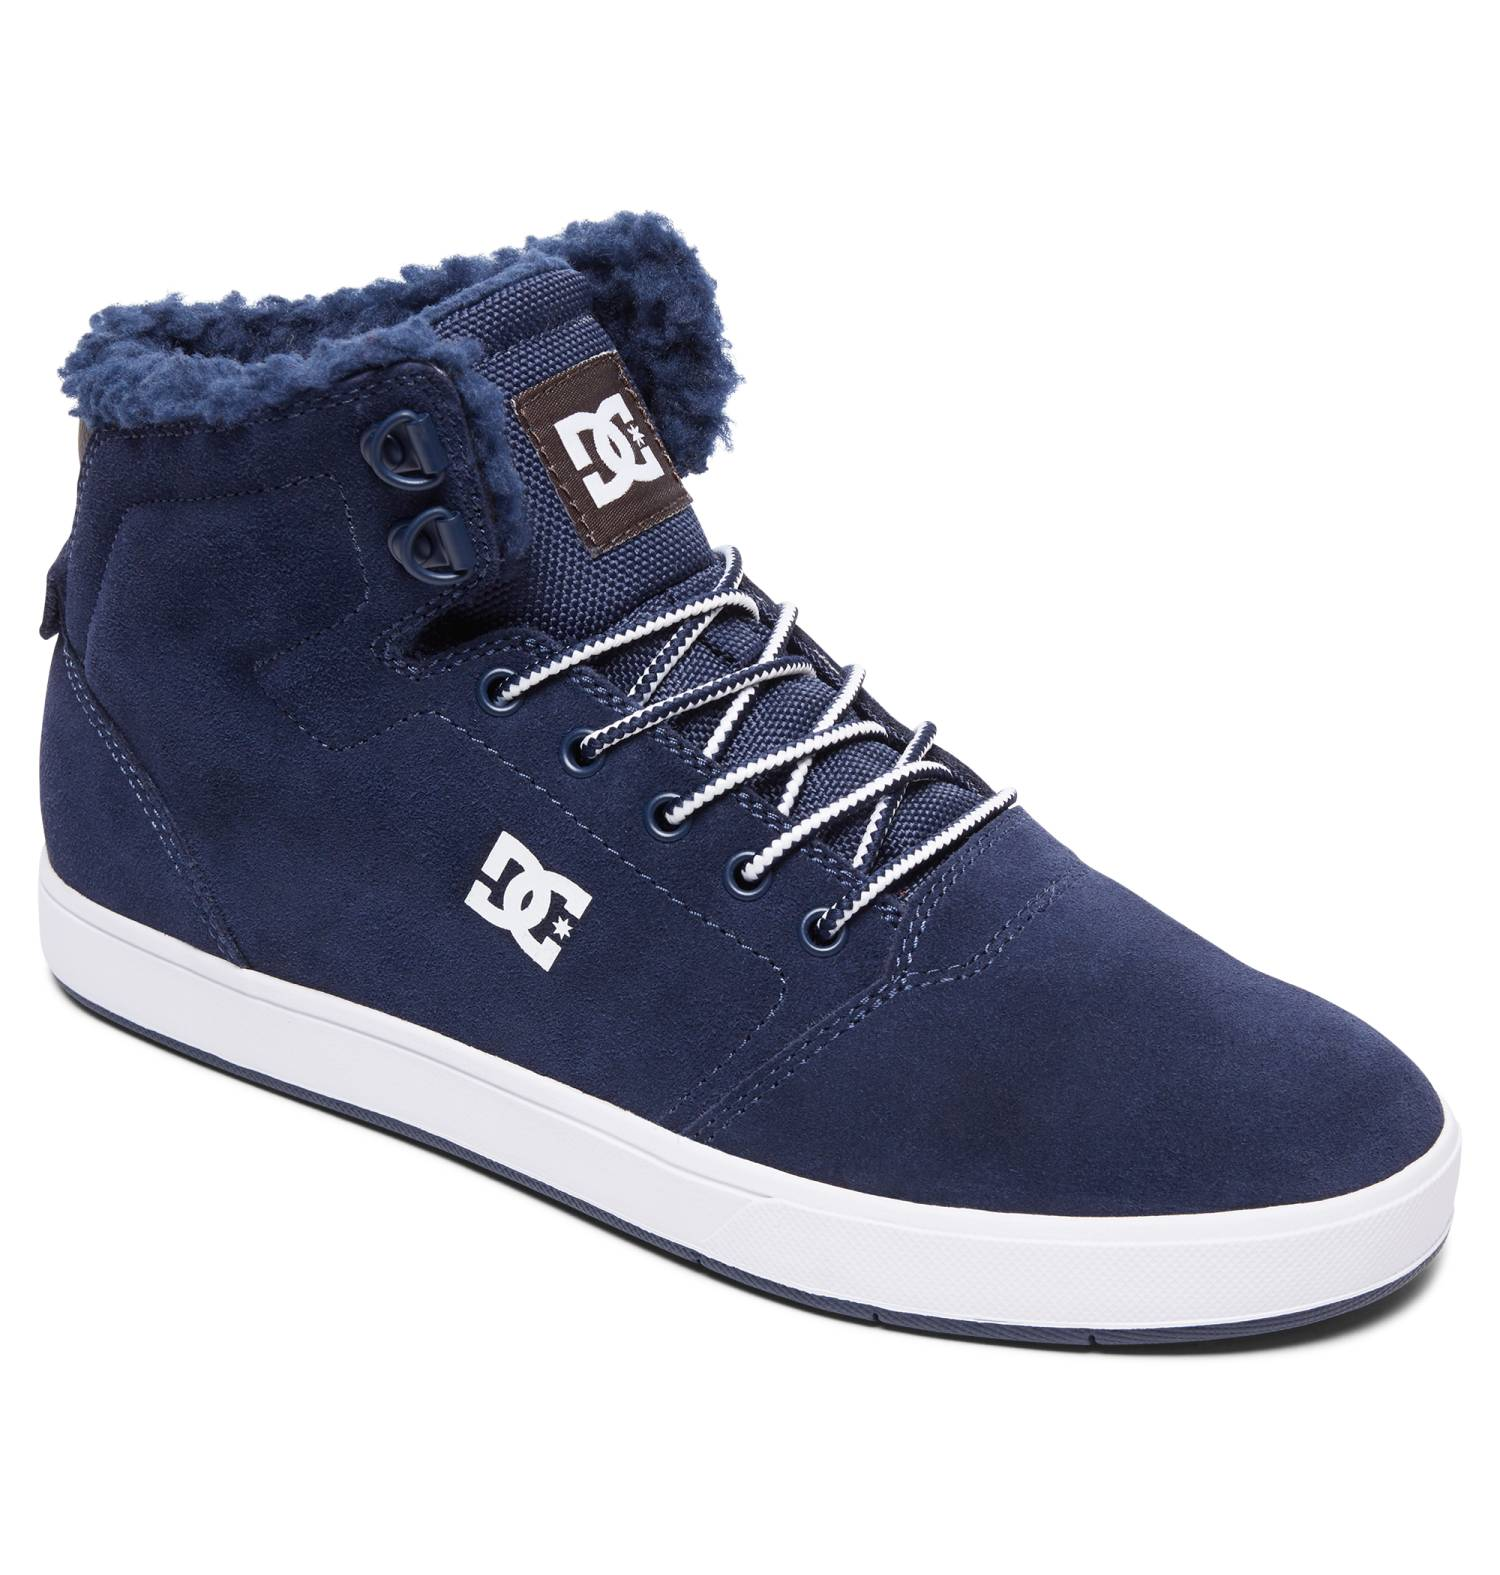 DC Shoes Crisis High Winter navyblau Navy Khaki Hi Sneaker Chukka Boots Herren